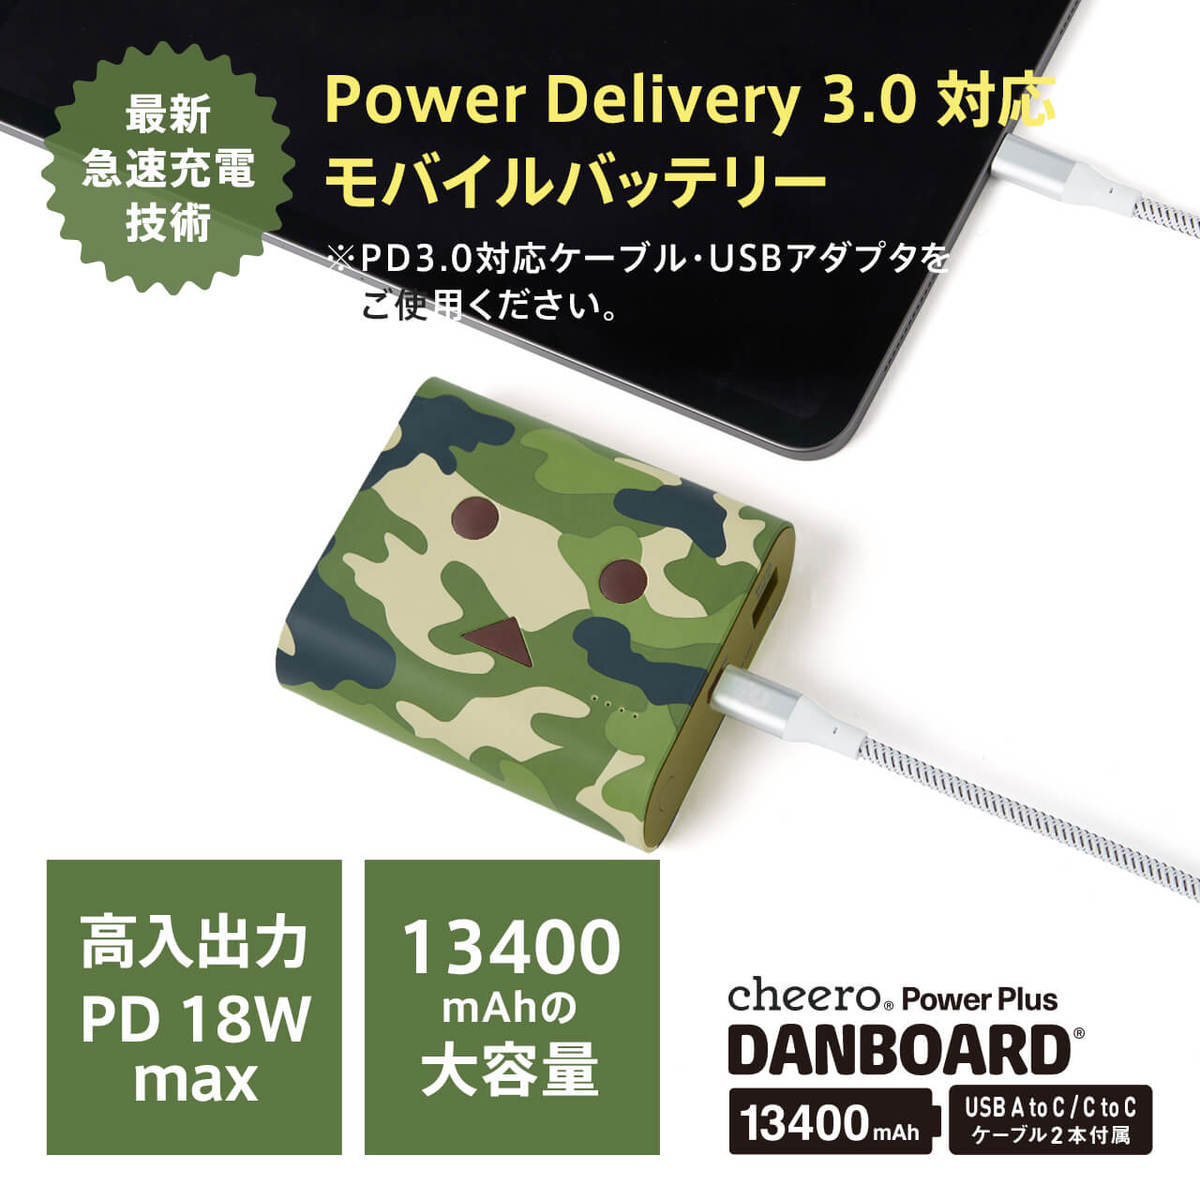 Danboard PD18W 13400mAh powerbank - Limited Camouflage (brand new series with PD3.0)